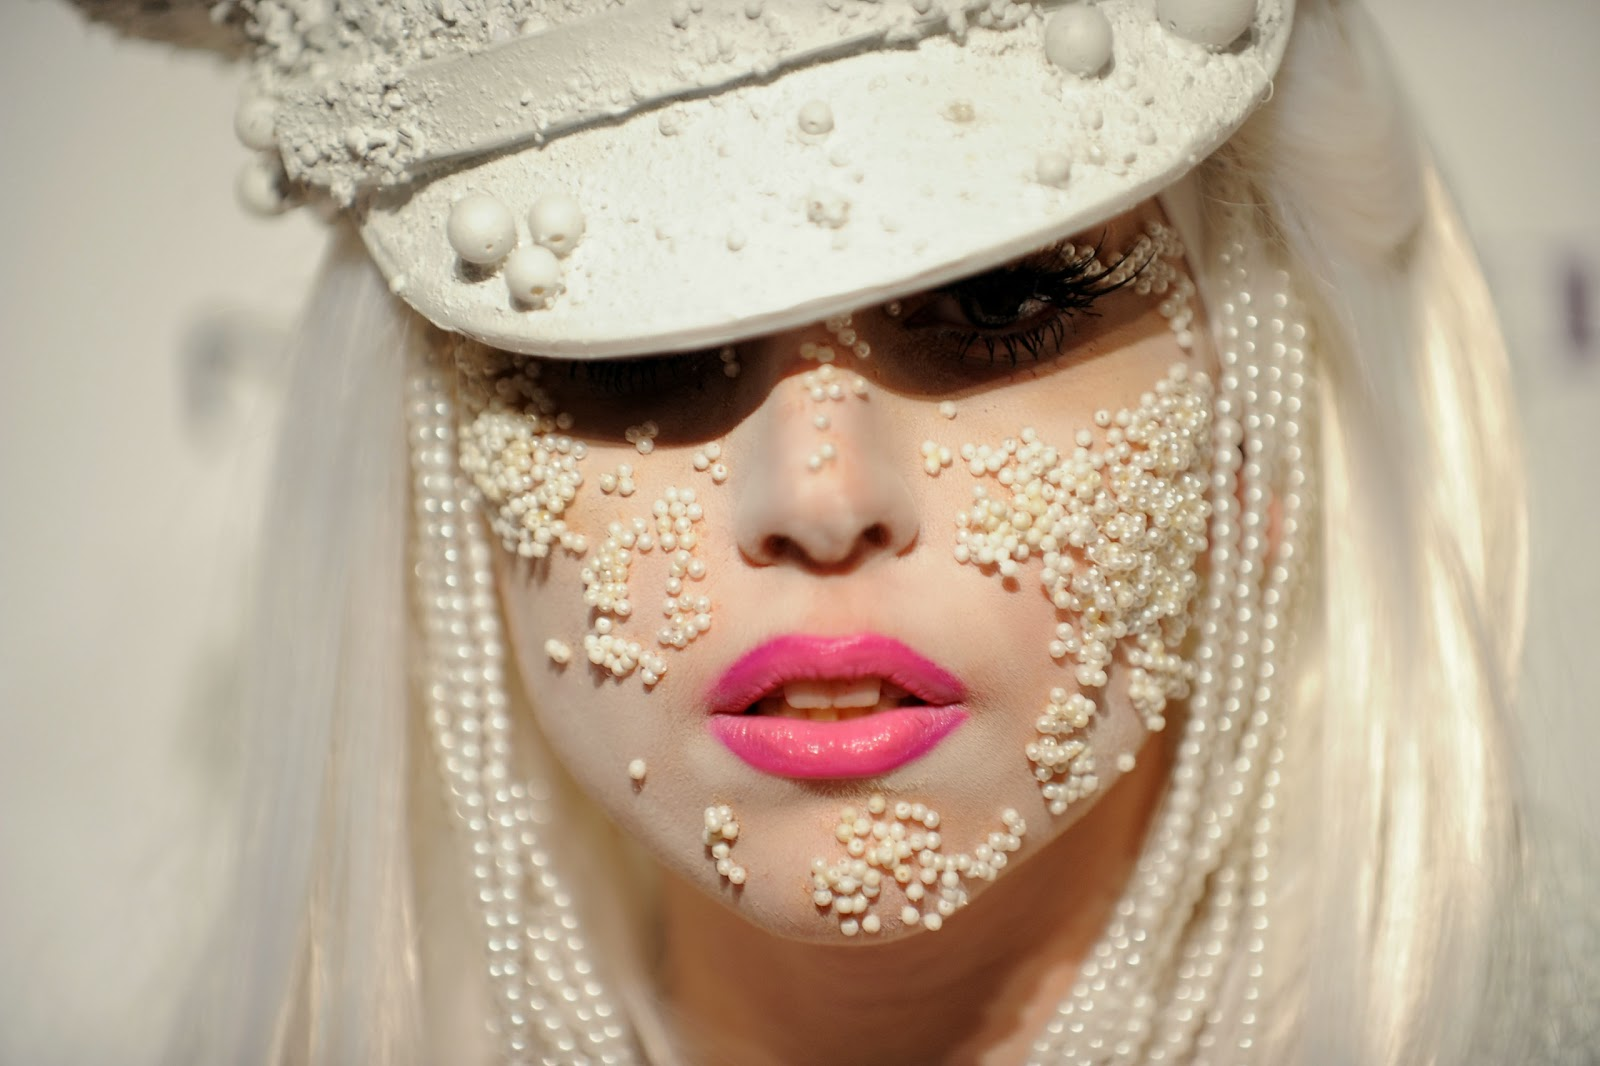 Lady Gaga Australian Tour Dates Announced